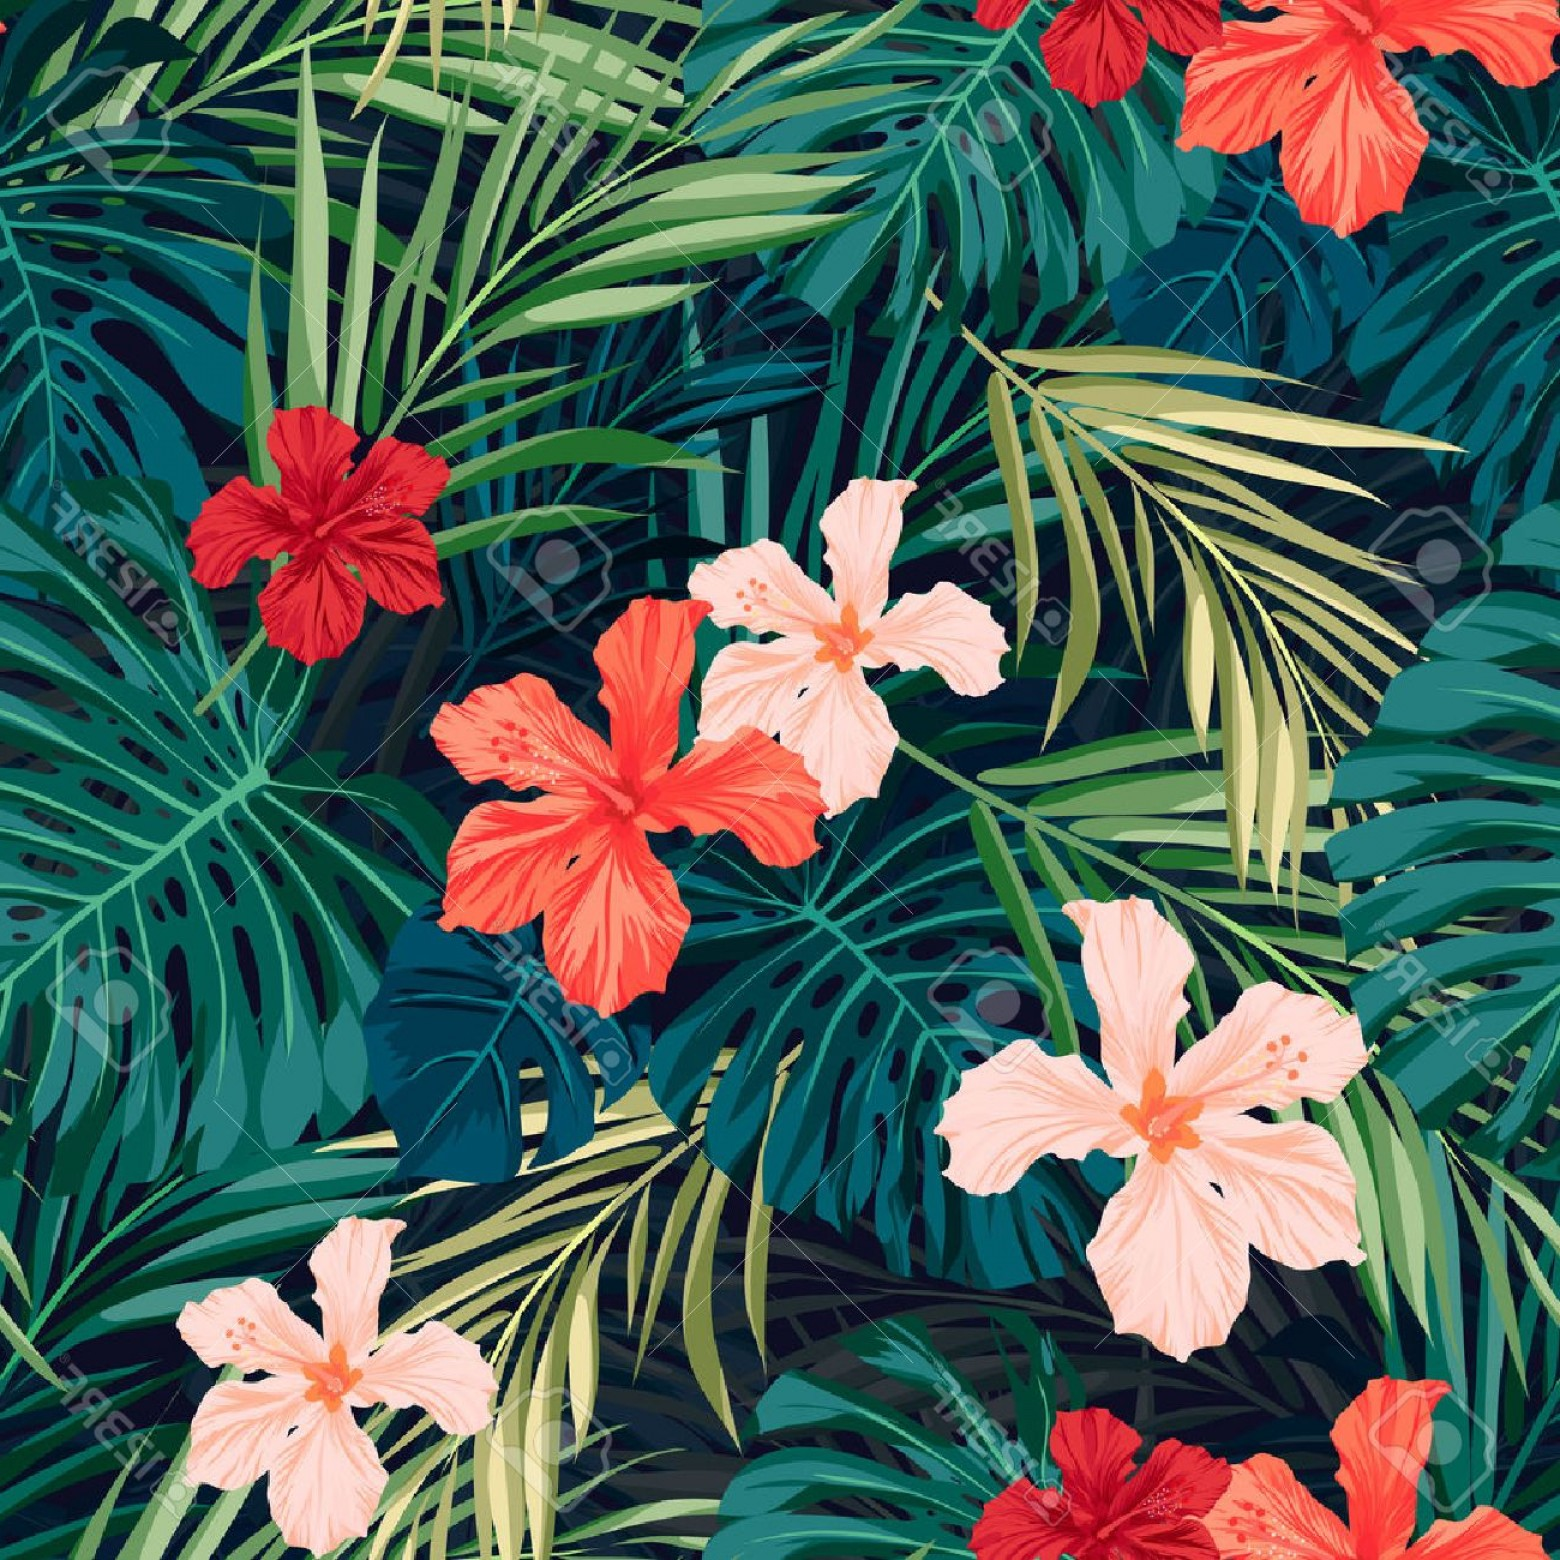 Hawaiian Flower Seamless Vector Pattern: Special Photostock Vector Summer Colorful Hawaiian Seamless Pattern With Tropical Plants And Hibiscus Flowers Vector Illustrat